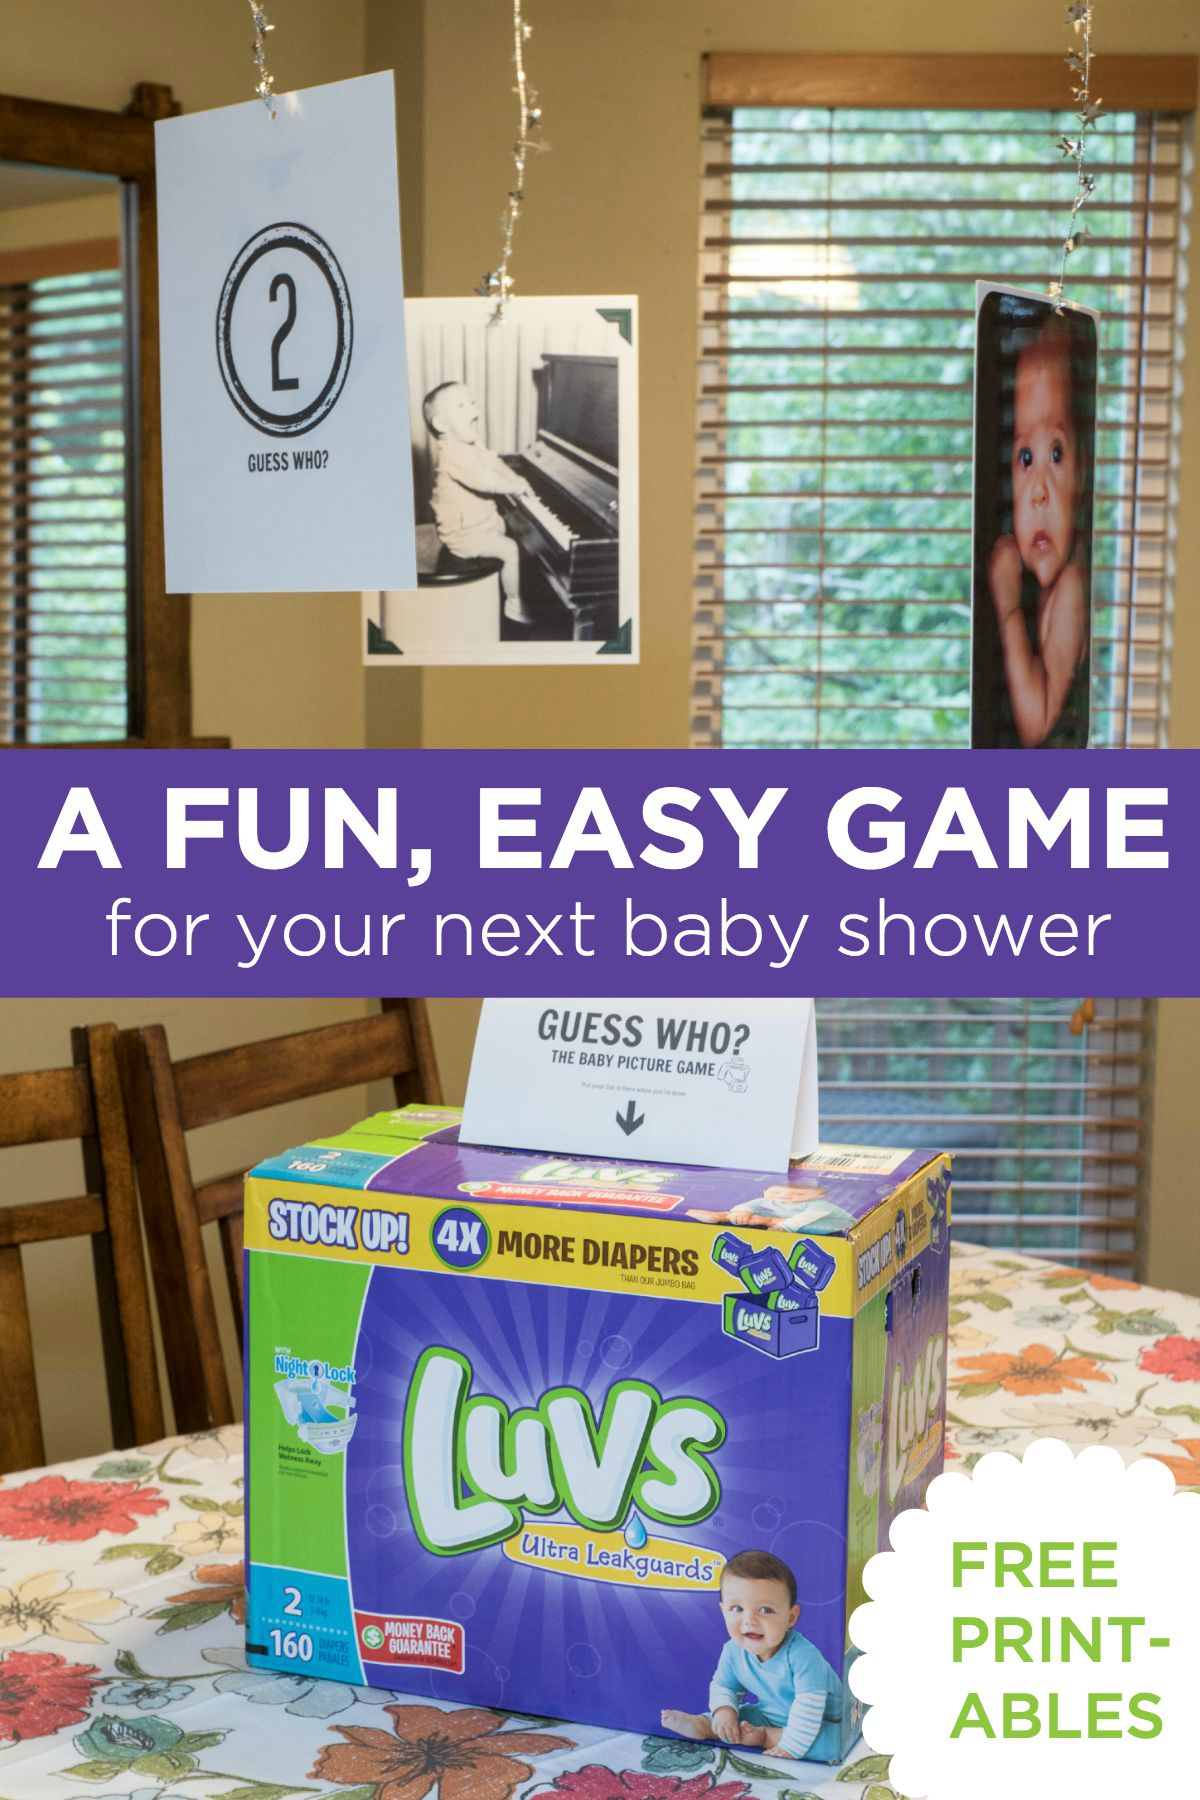 Looking for baby sprinkle game ideas? Here's one that's fun to play, easy to plan, and leaves behind a nice gift for Mom. Step-by-step and free printables!